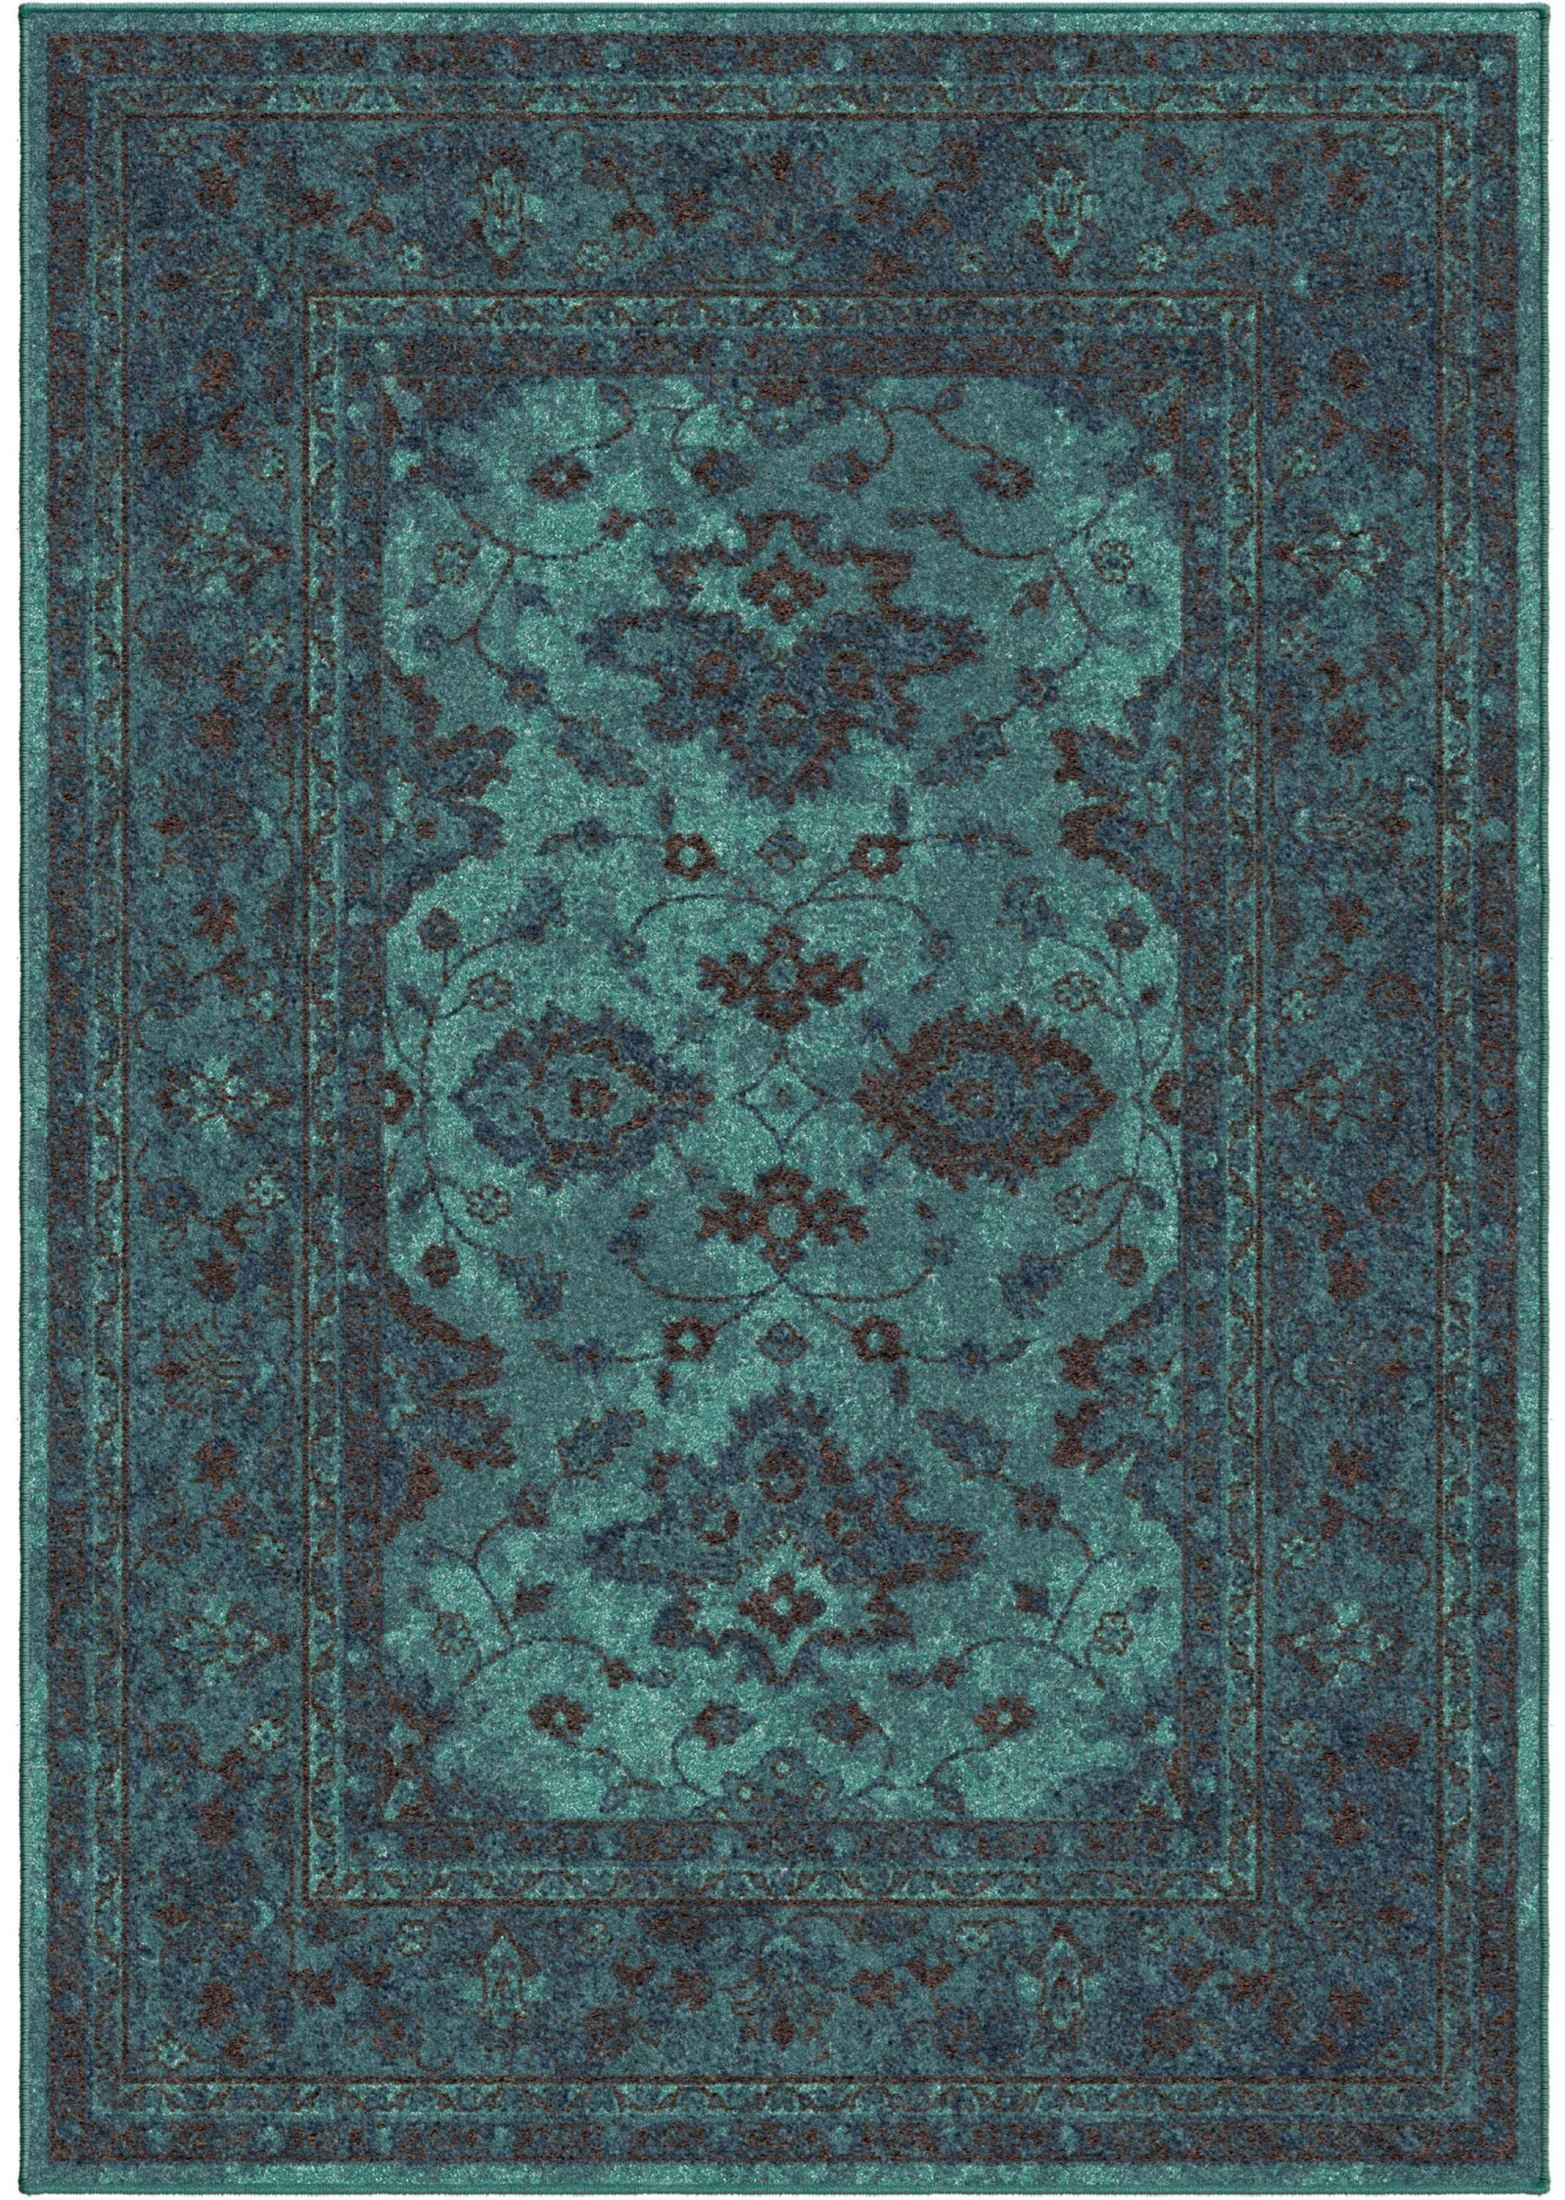 Bright Rugs Spoleto Bright Color Modern Ethnicagra Blue Large Area Rug